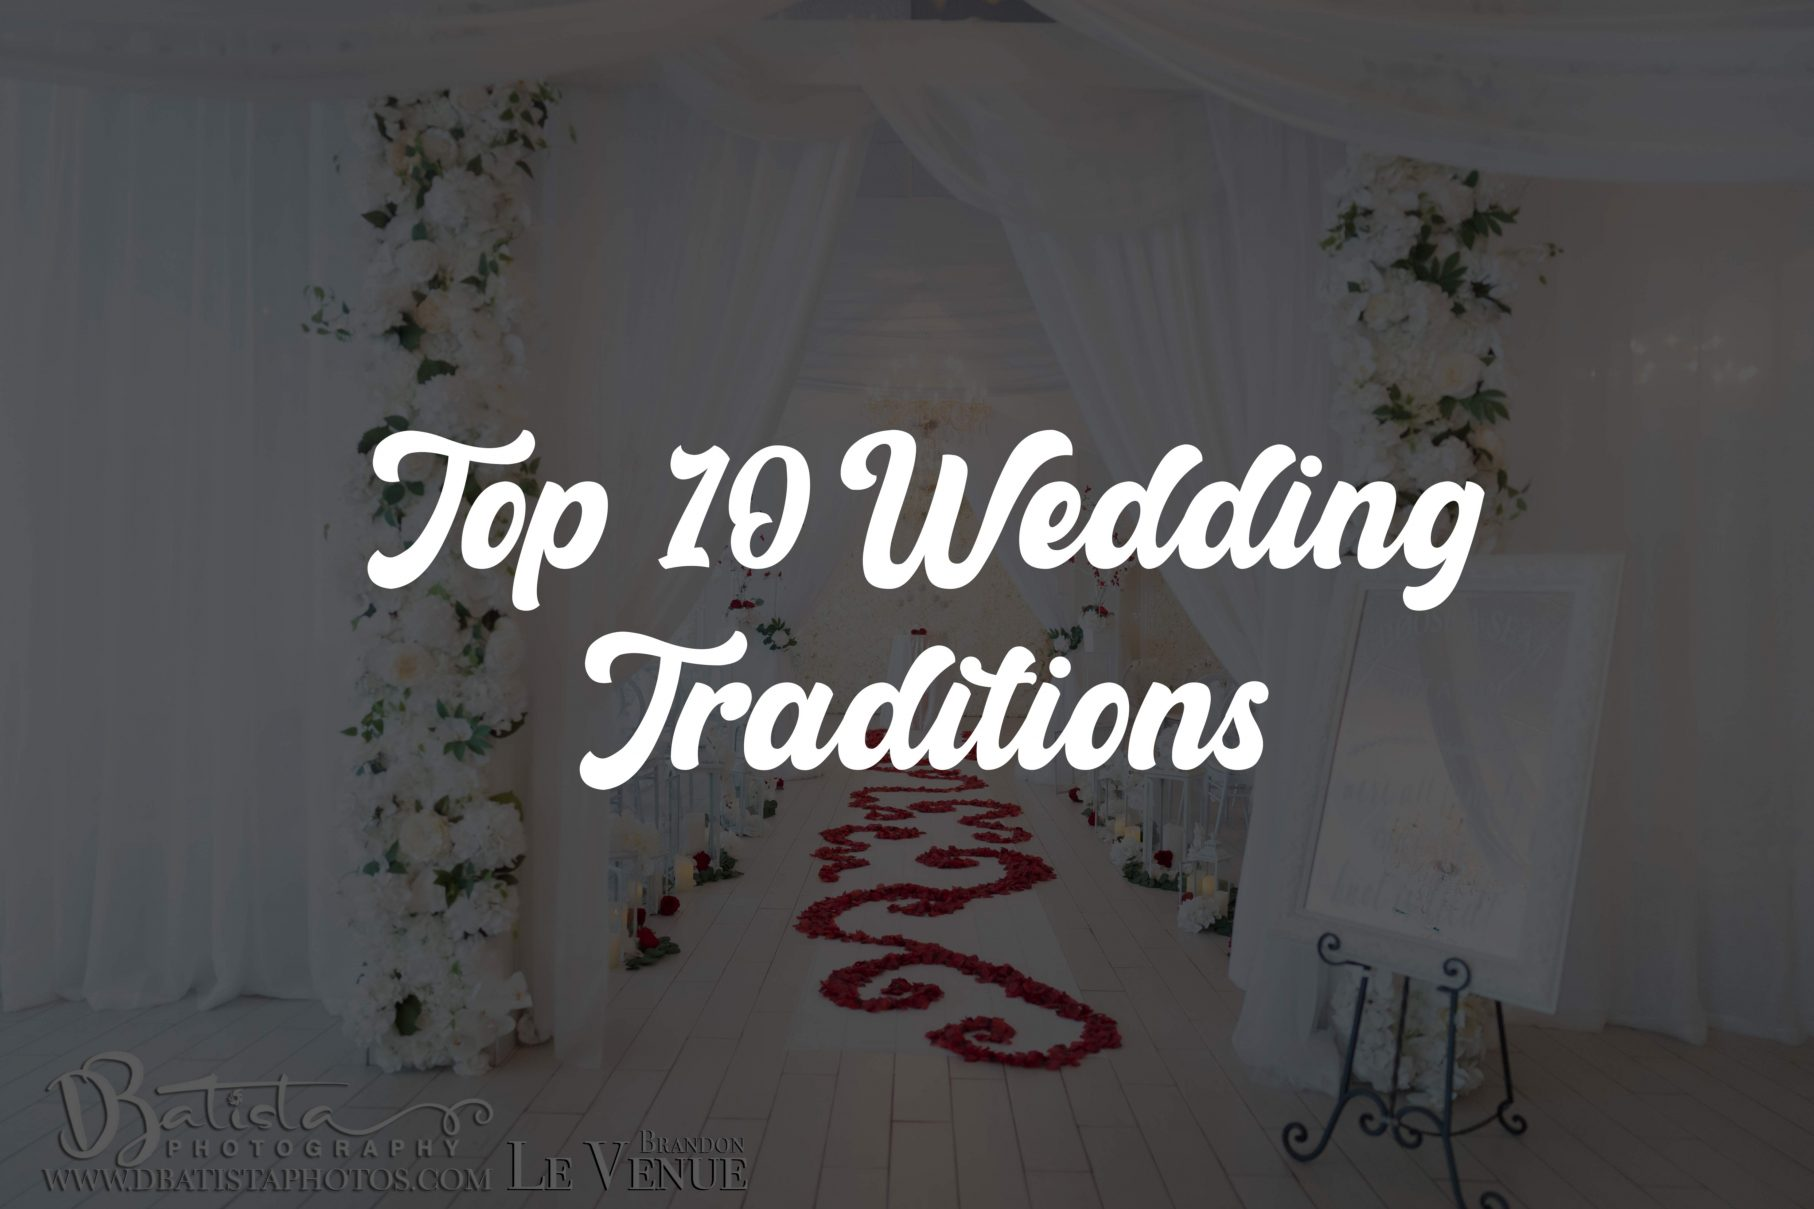 Top 10 Wedding Traditions to Keep Your Wedding Fun and Exciting